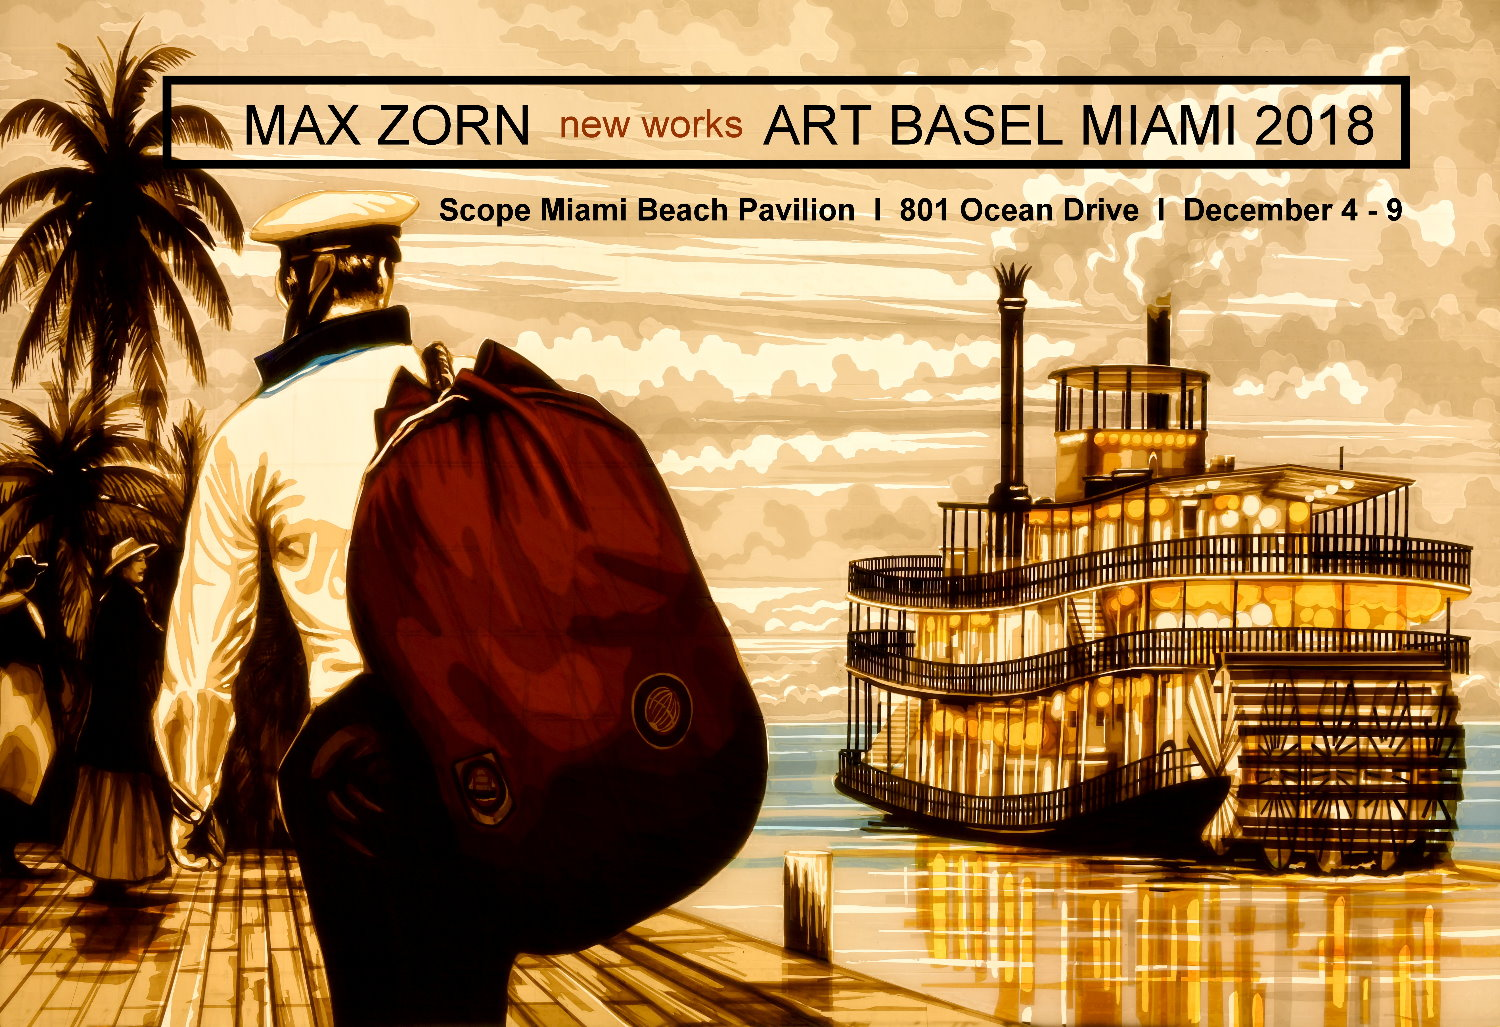 Tape Artist Max Zorn will be showing new tape artworks at Scope Miami Beach during the ArtBasel week. Tape Art, Klebeband, Kunst, Art, contemporary art